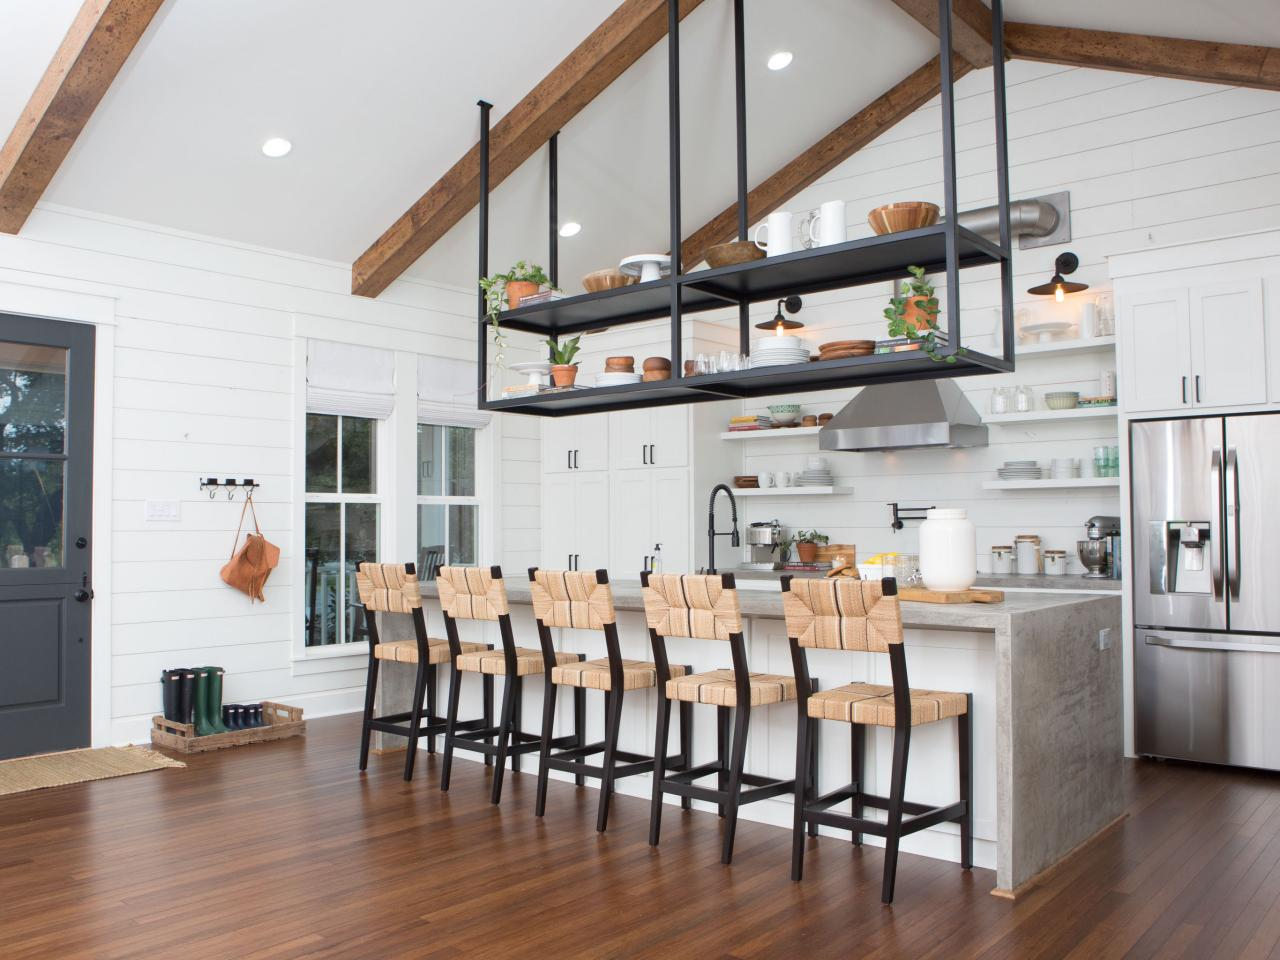 Suspended shelves in a home on HGTV's 'Fixer Upper'